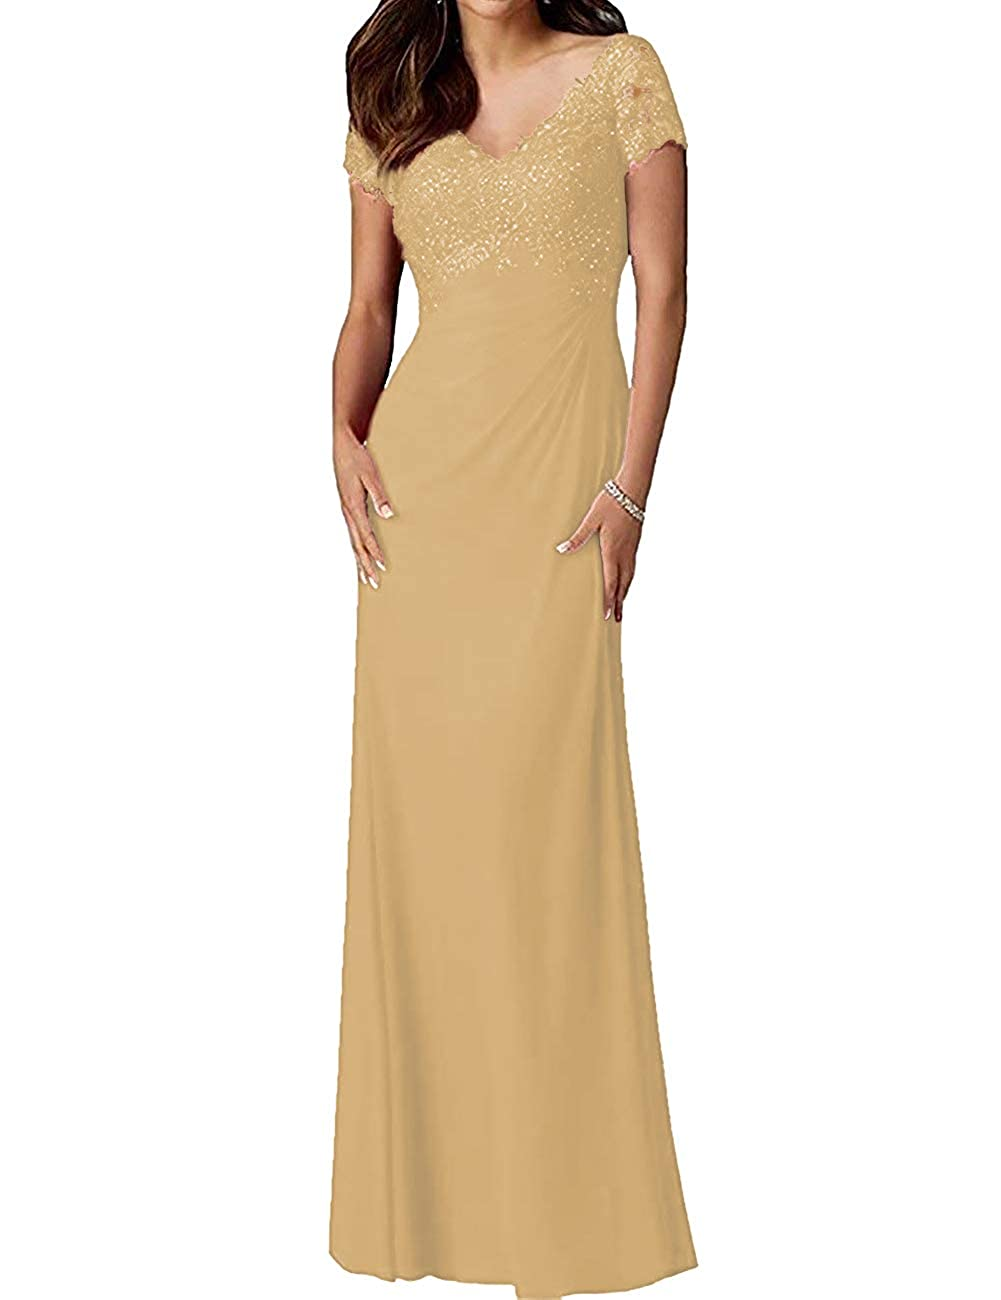 Champagne H.S.D Mother of The Bride Dresses Lace Formal Gowns Long Evening Dresses Short Sleeve